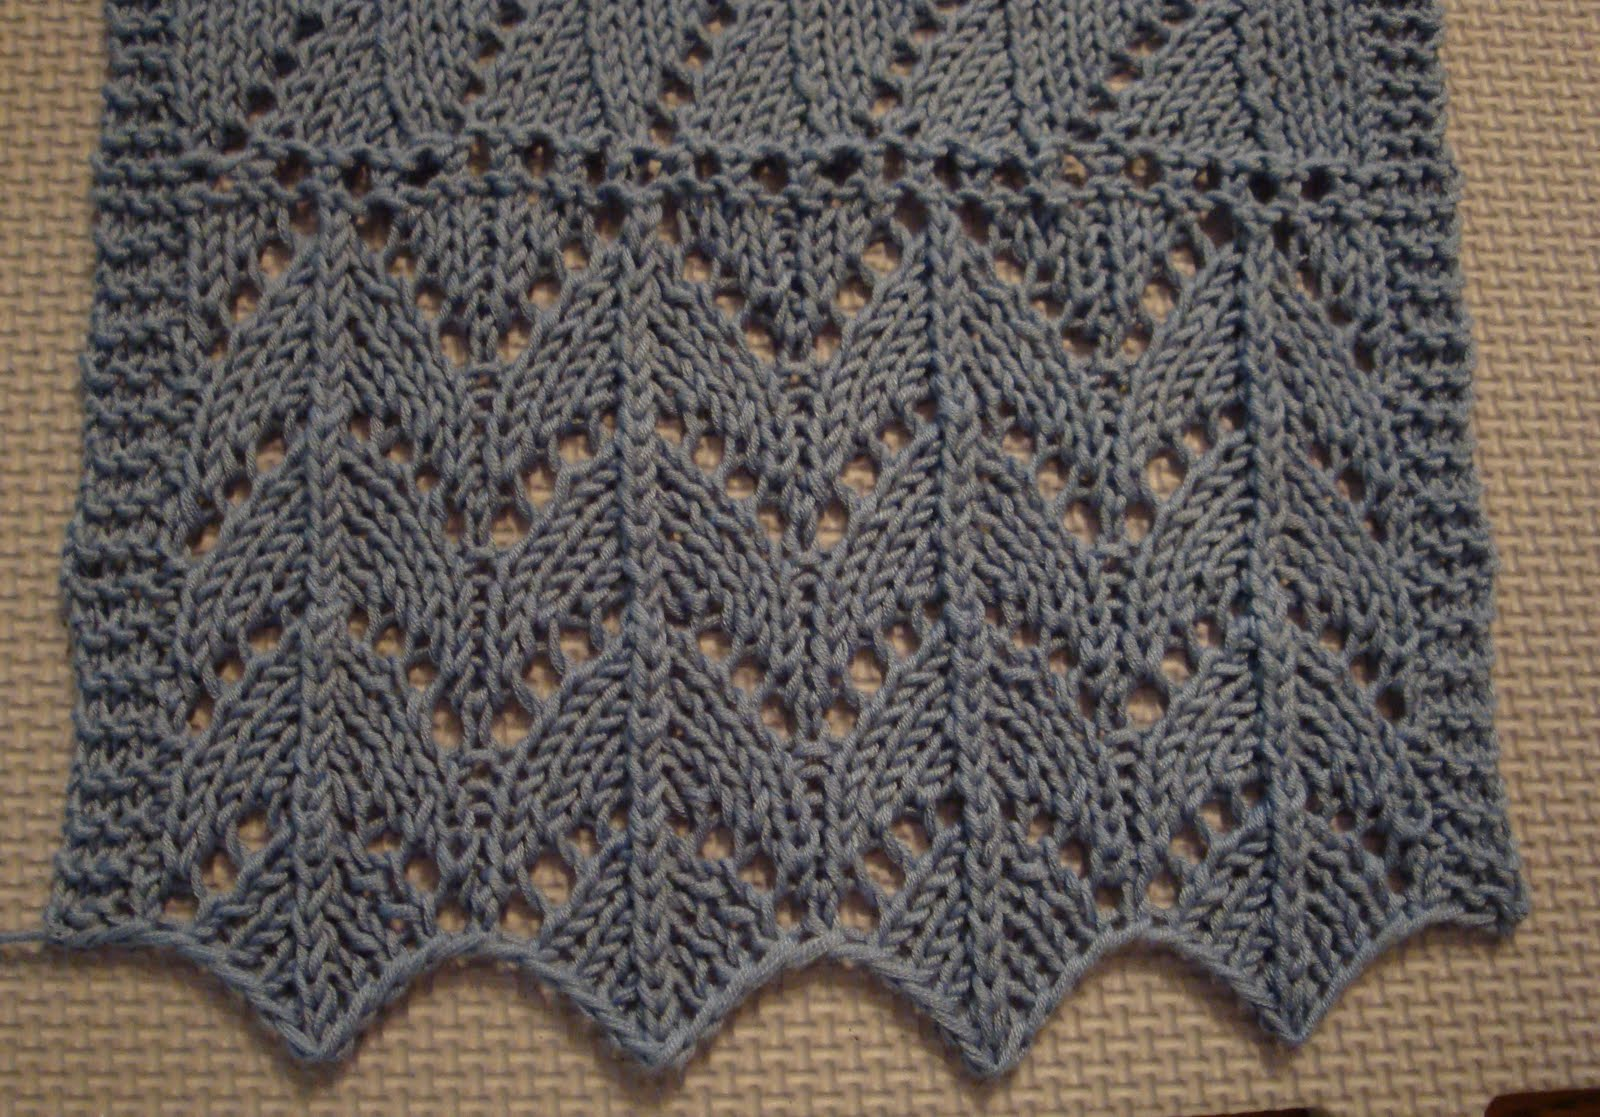 Knitting Horseshoe Lace Stitch Pattern : Kims Knitting Korner: July 2010